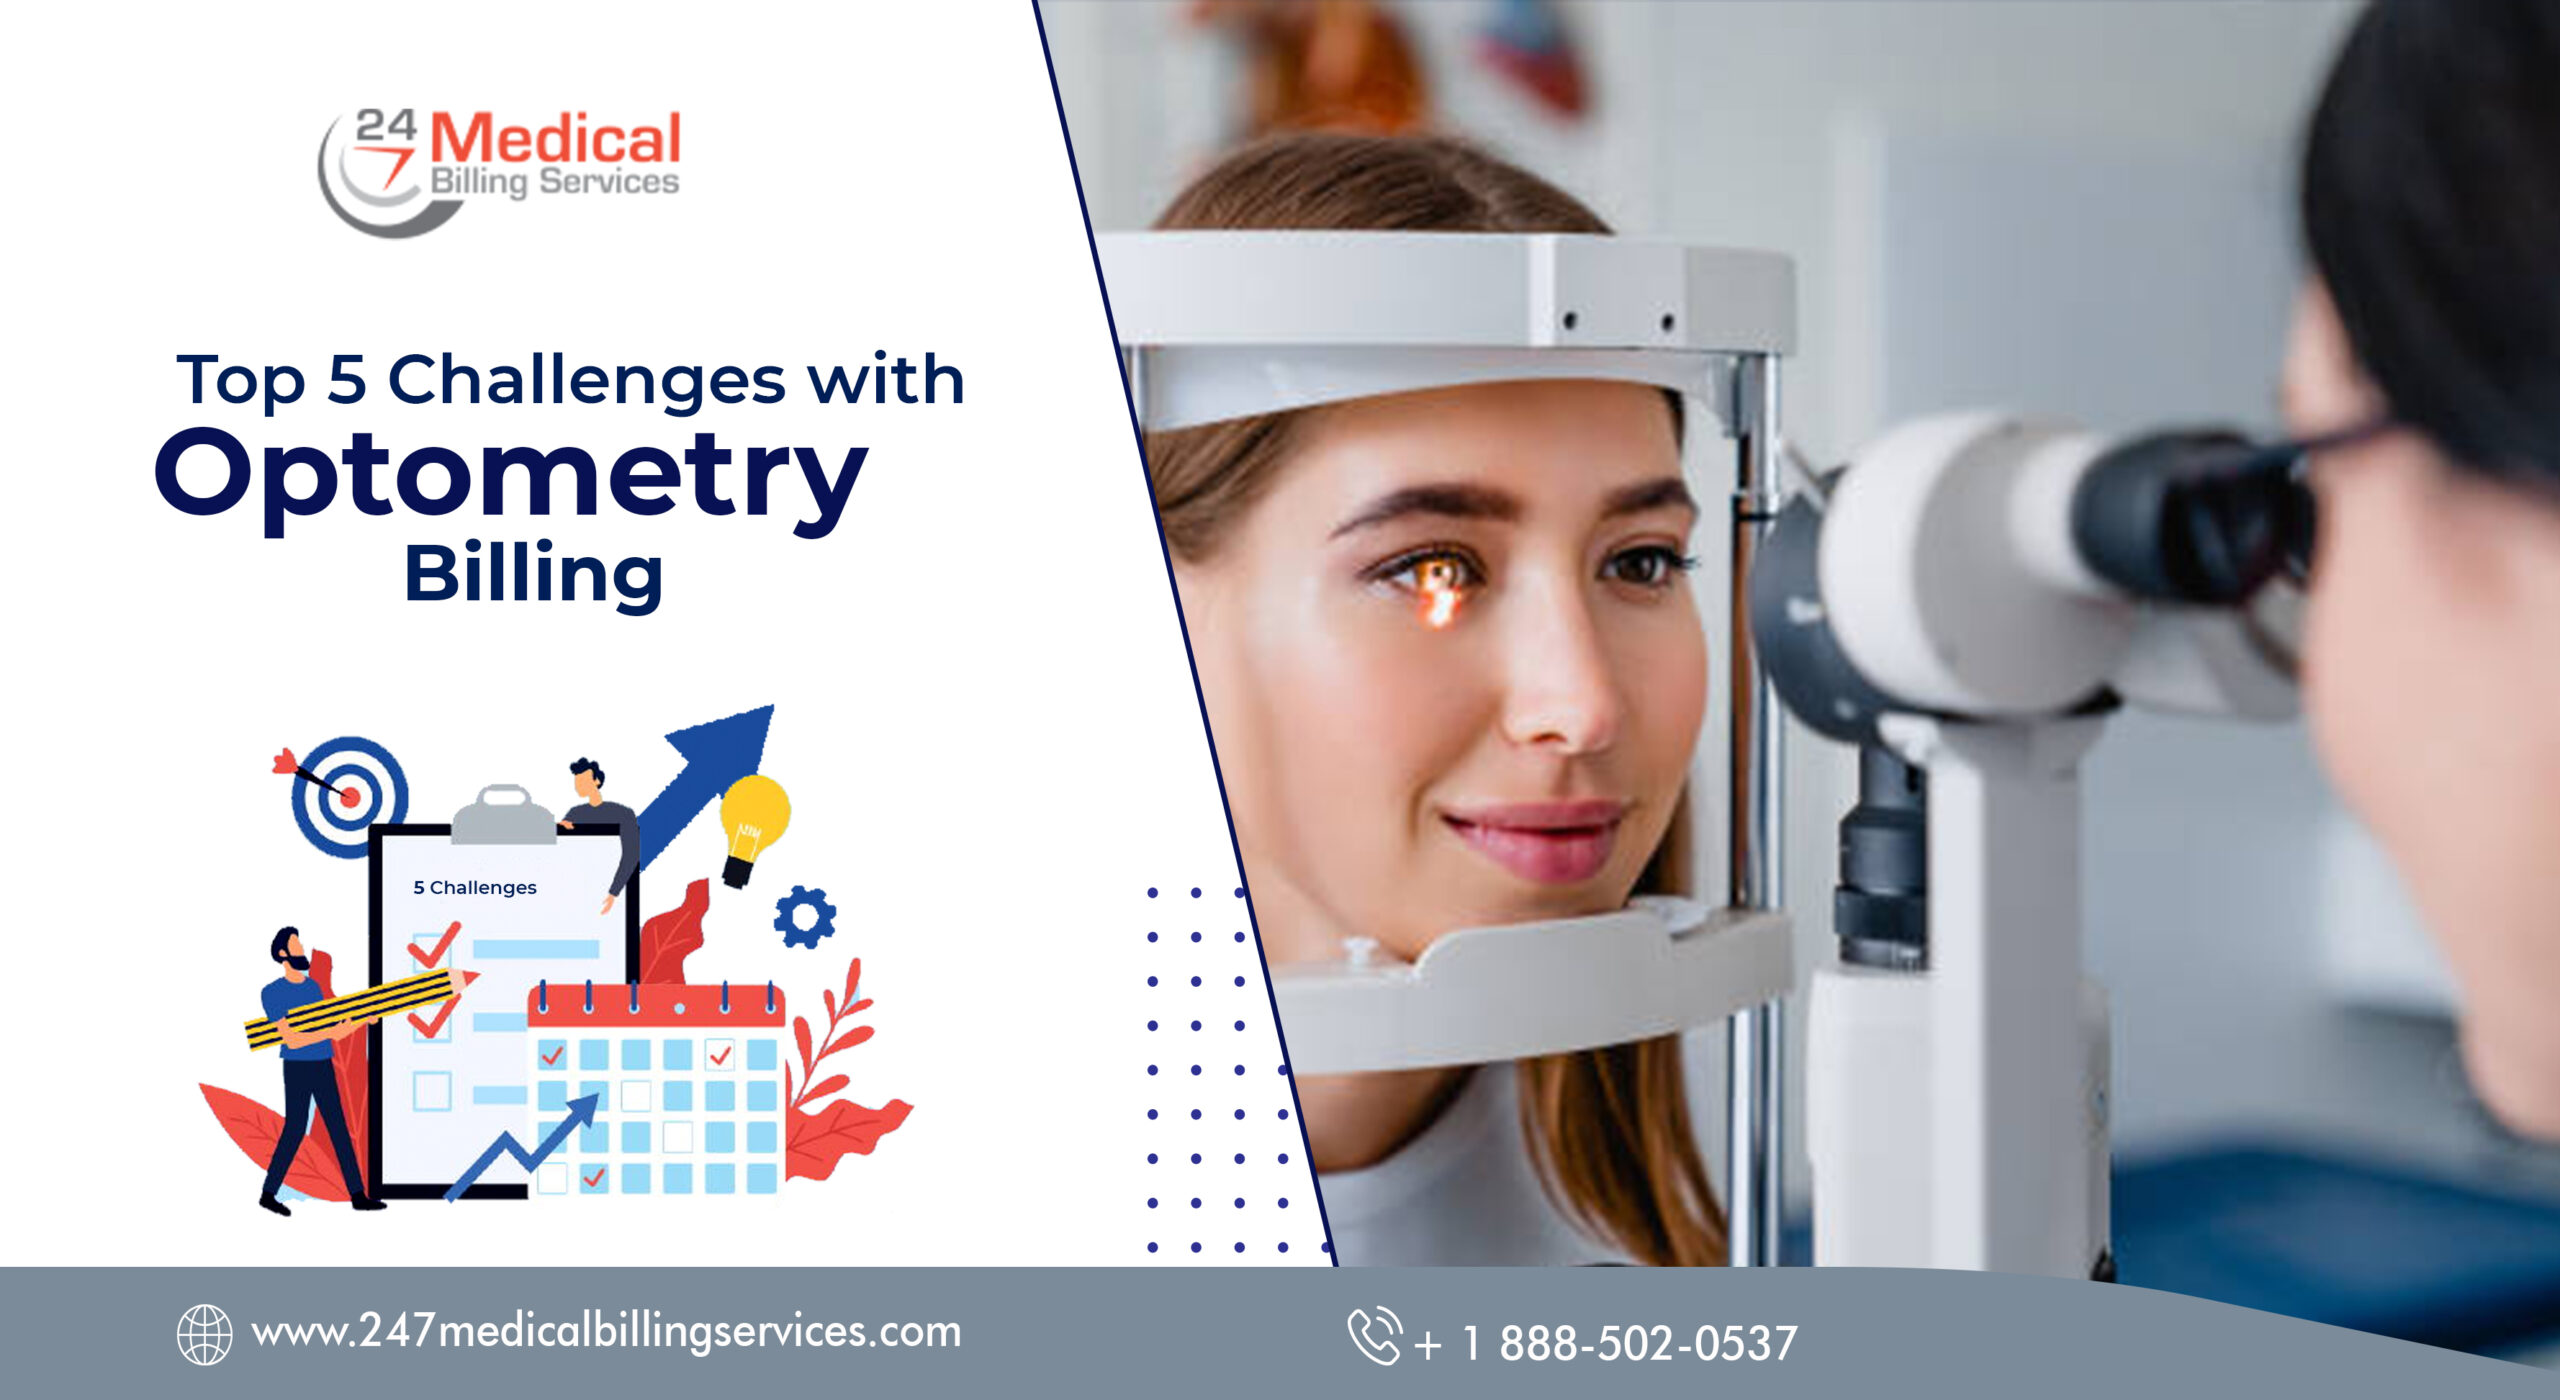 Top 5 Challenges with Optometry Billing